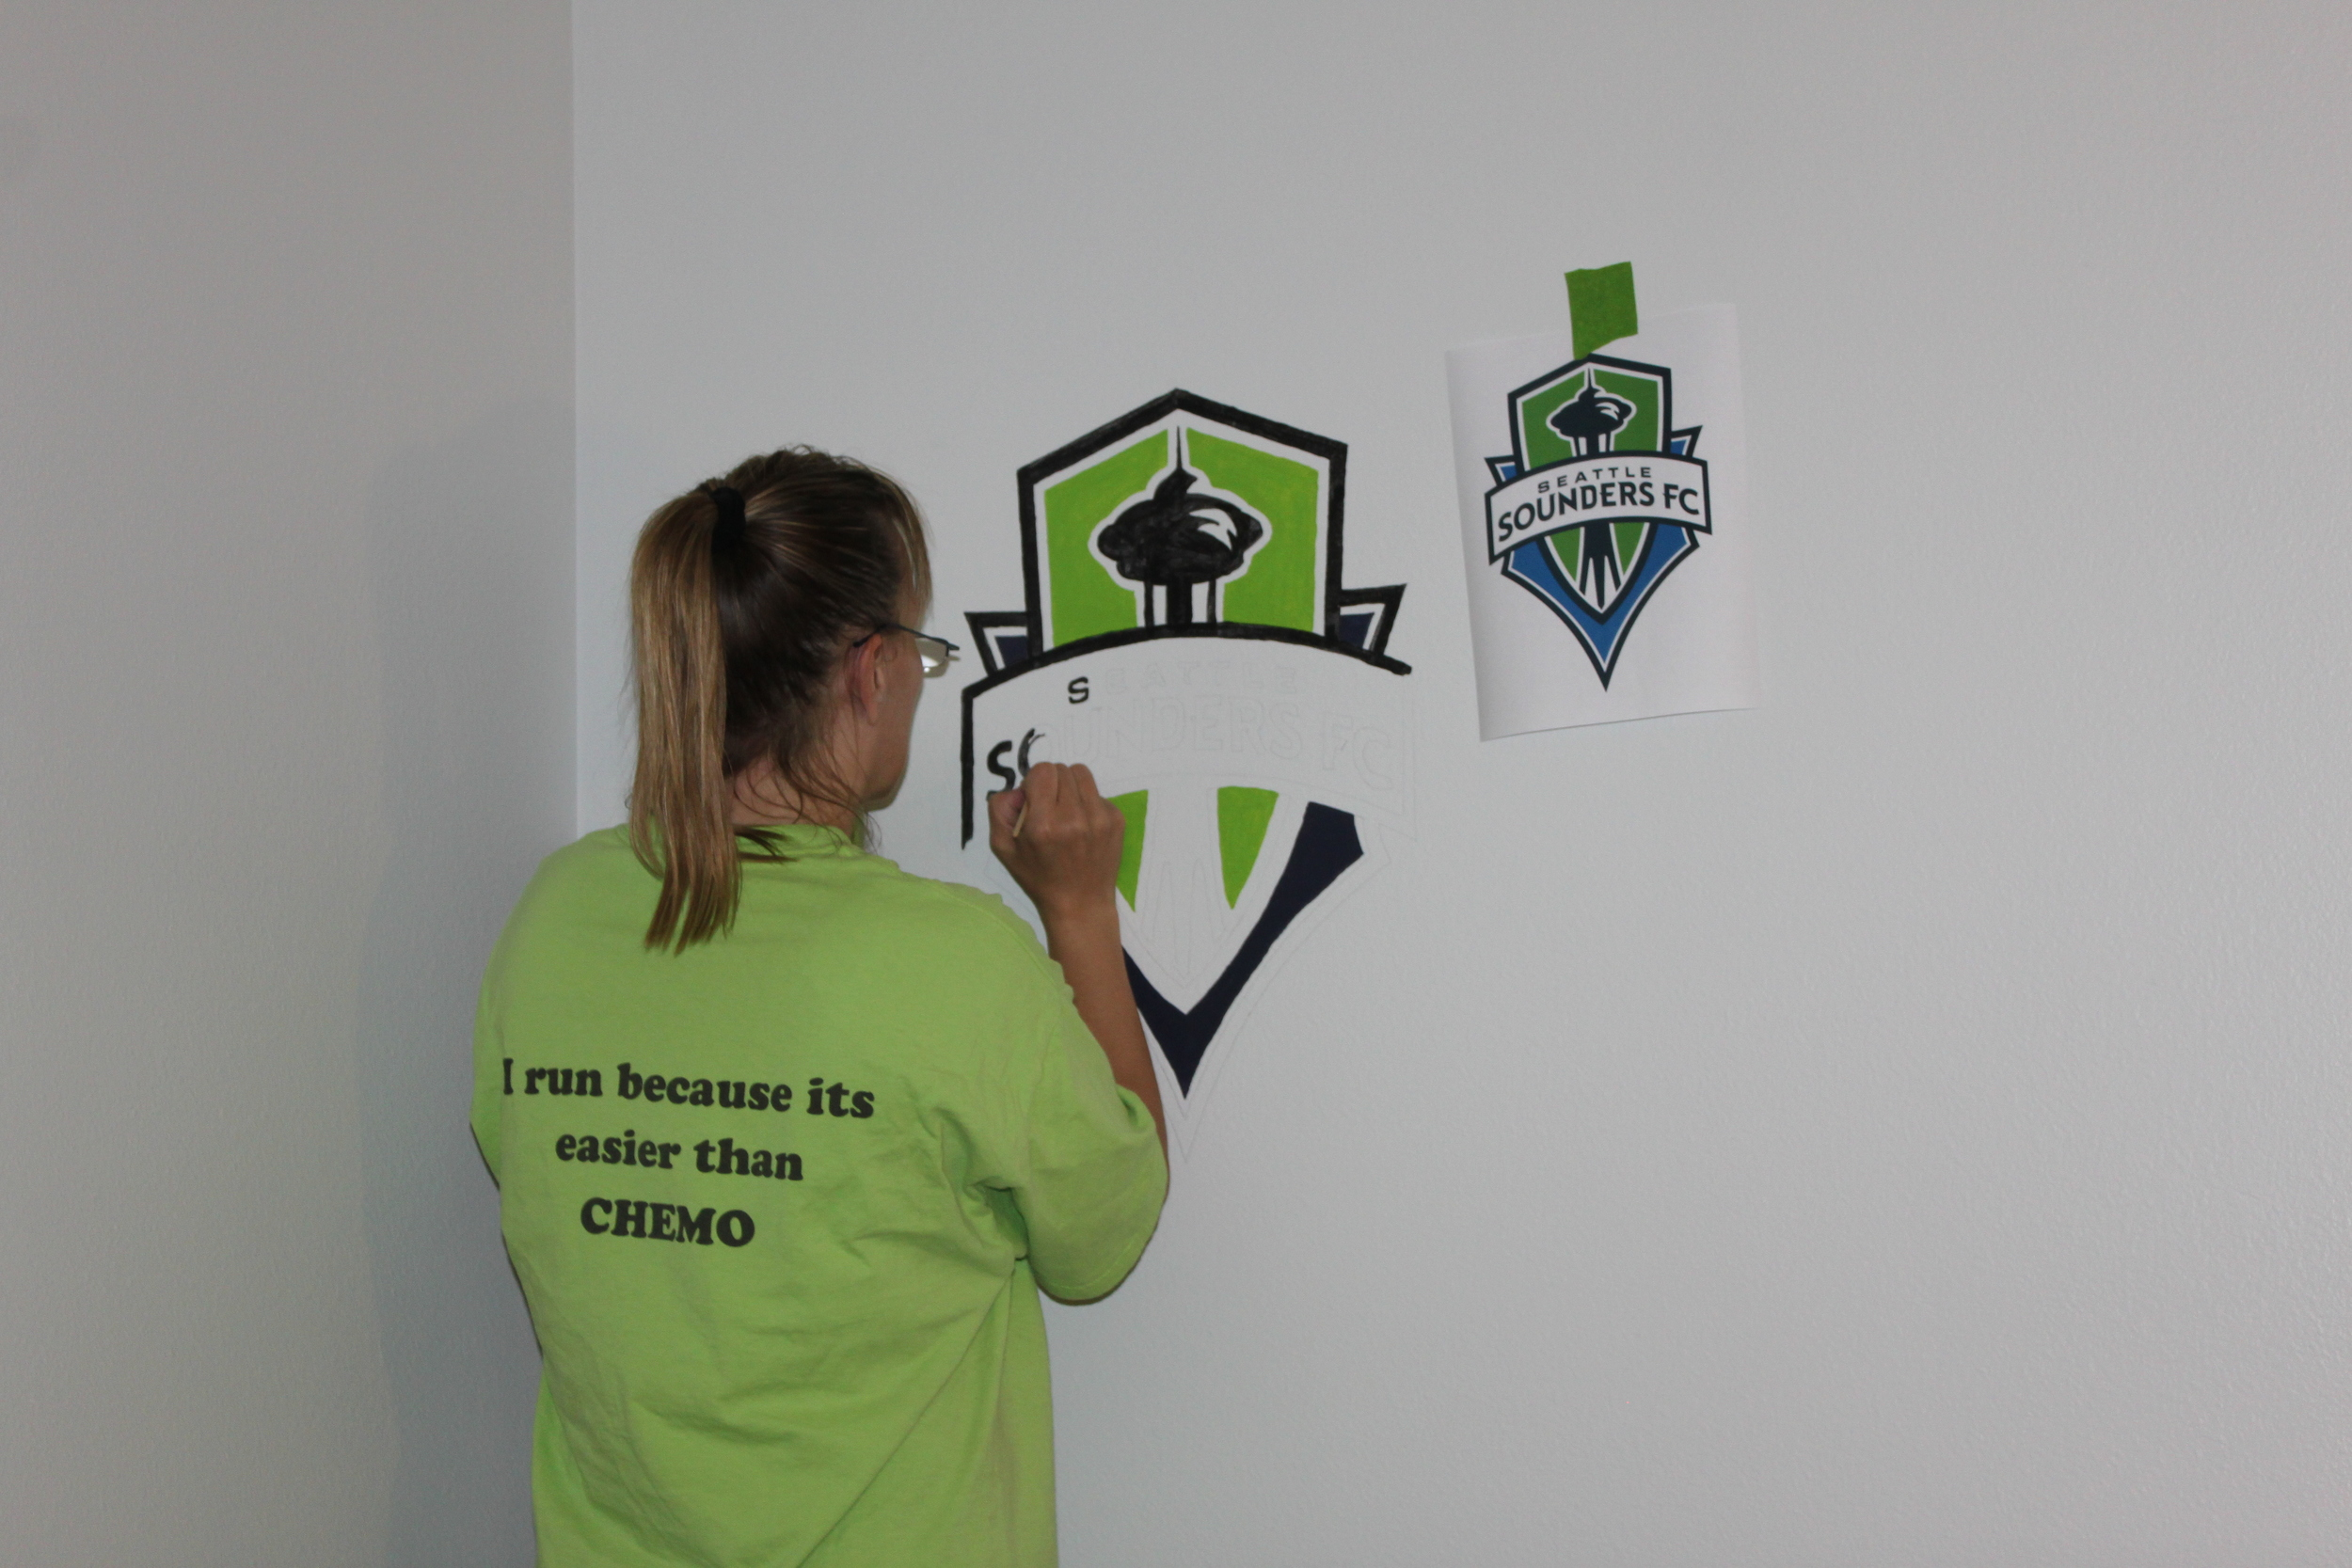 Doreen painting the Sounders logo on the wall.